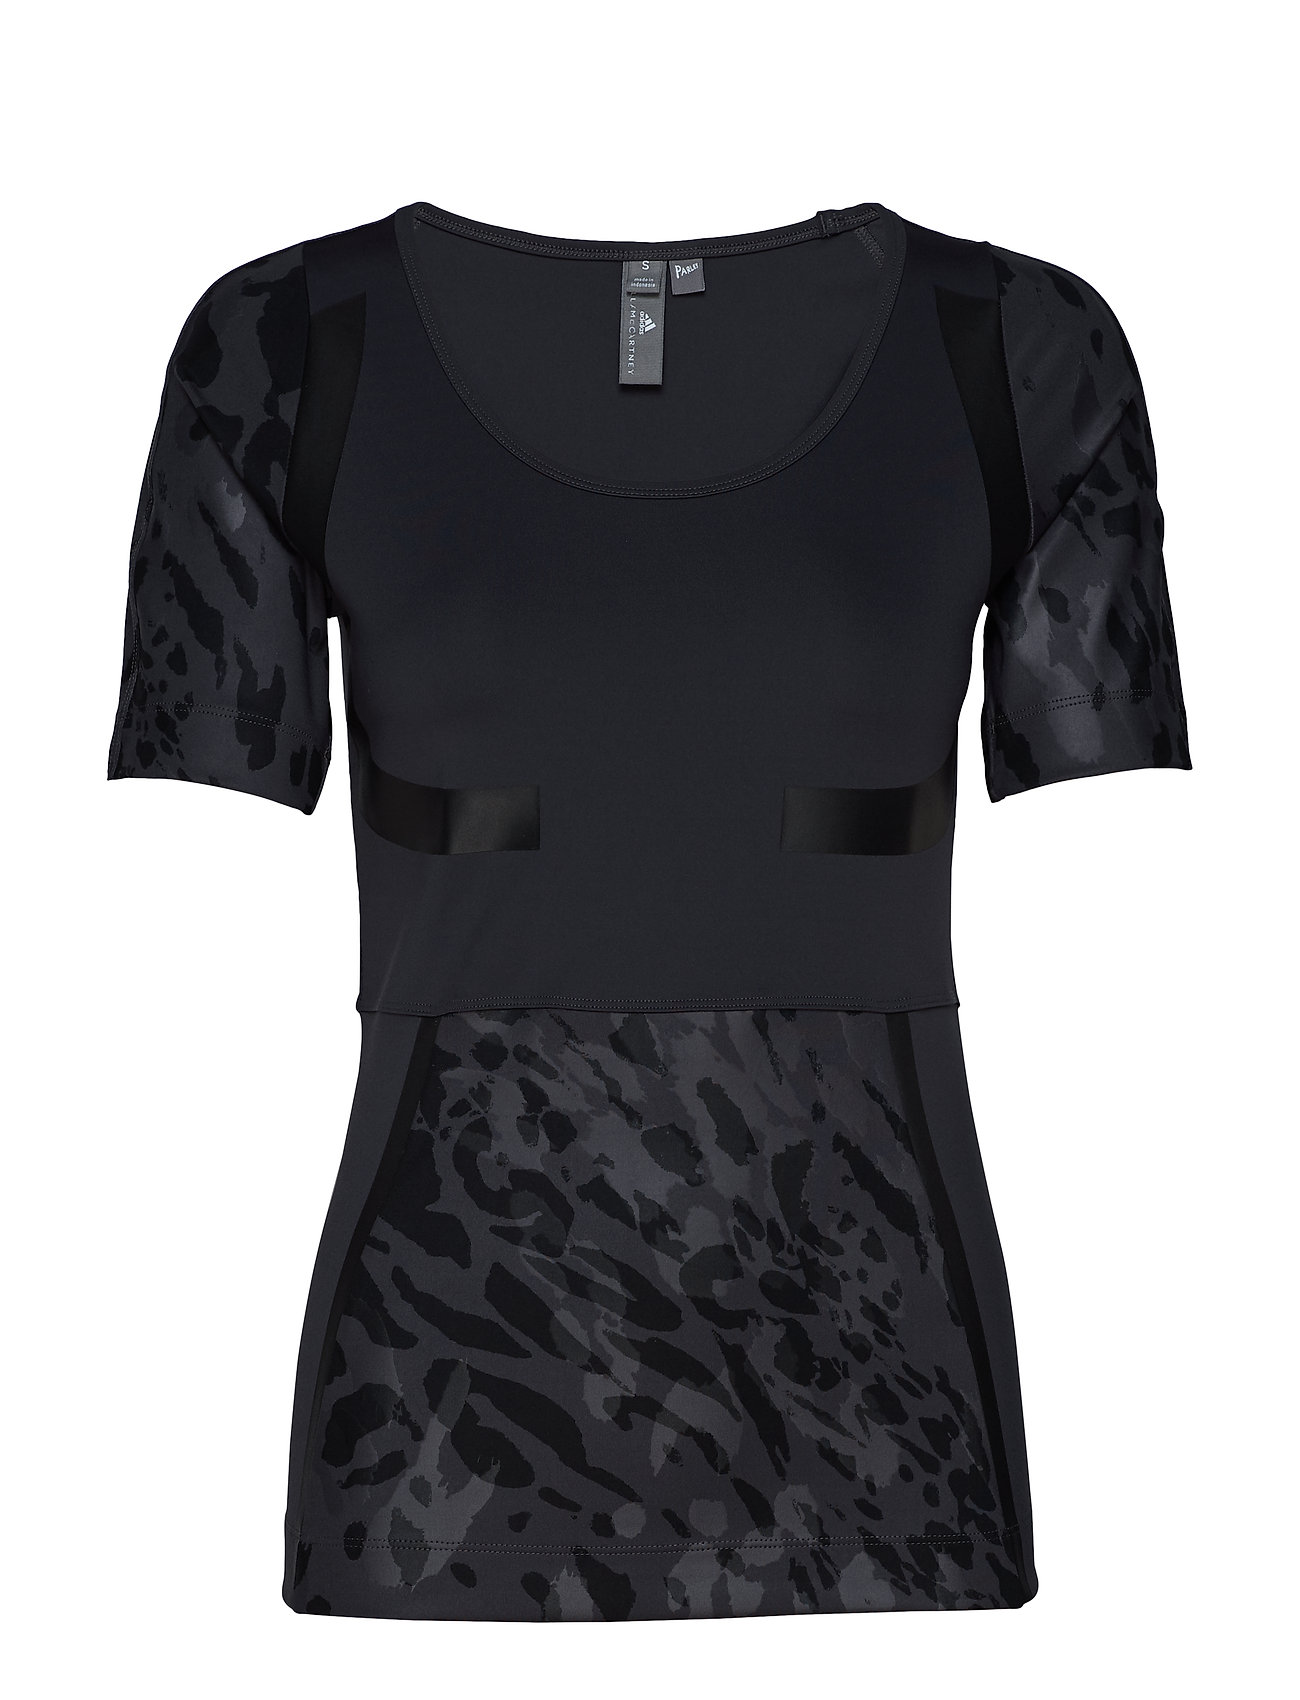 adidas by Stella McCartney RUN TEE - UTIBLK